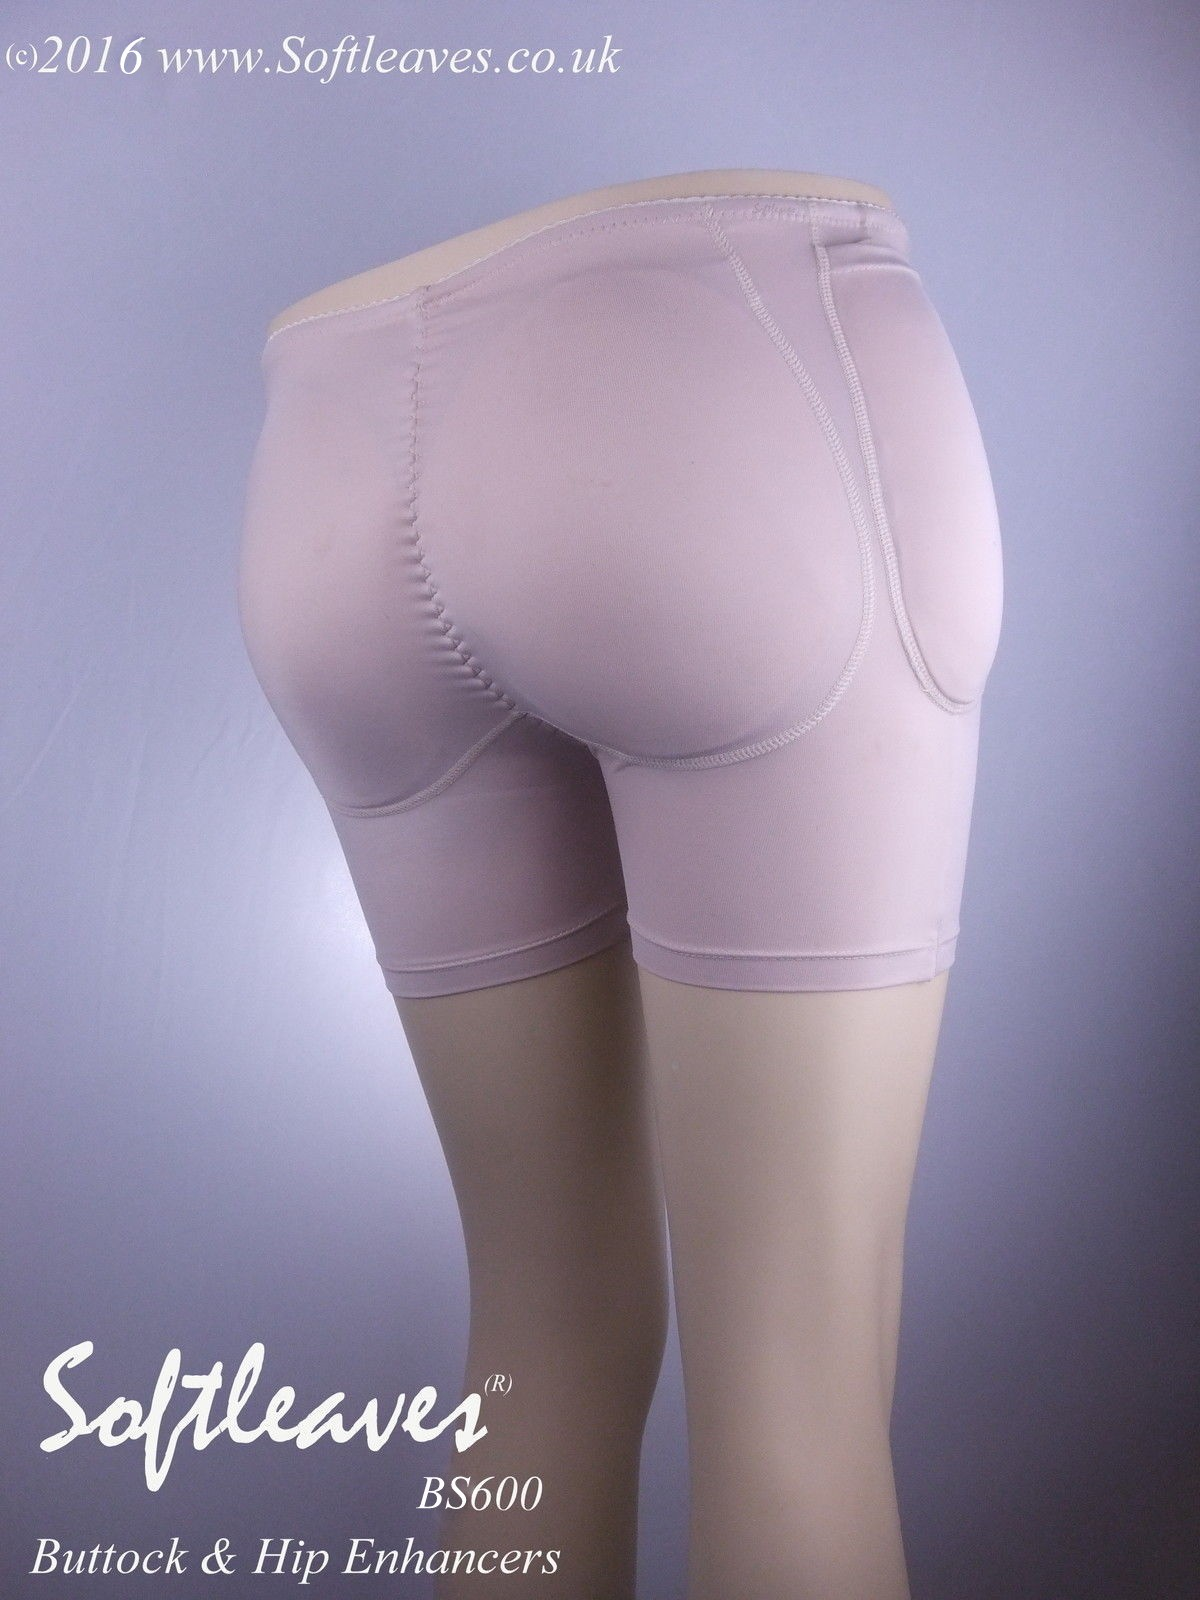 Softleaves BS600 Silicone Buttocks and Hip Enhancers Padded  Panties and Pants